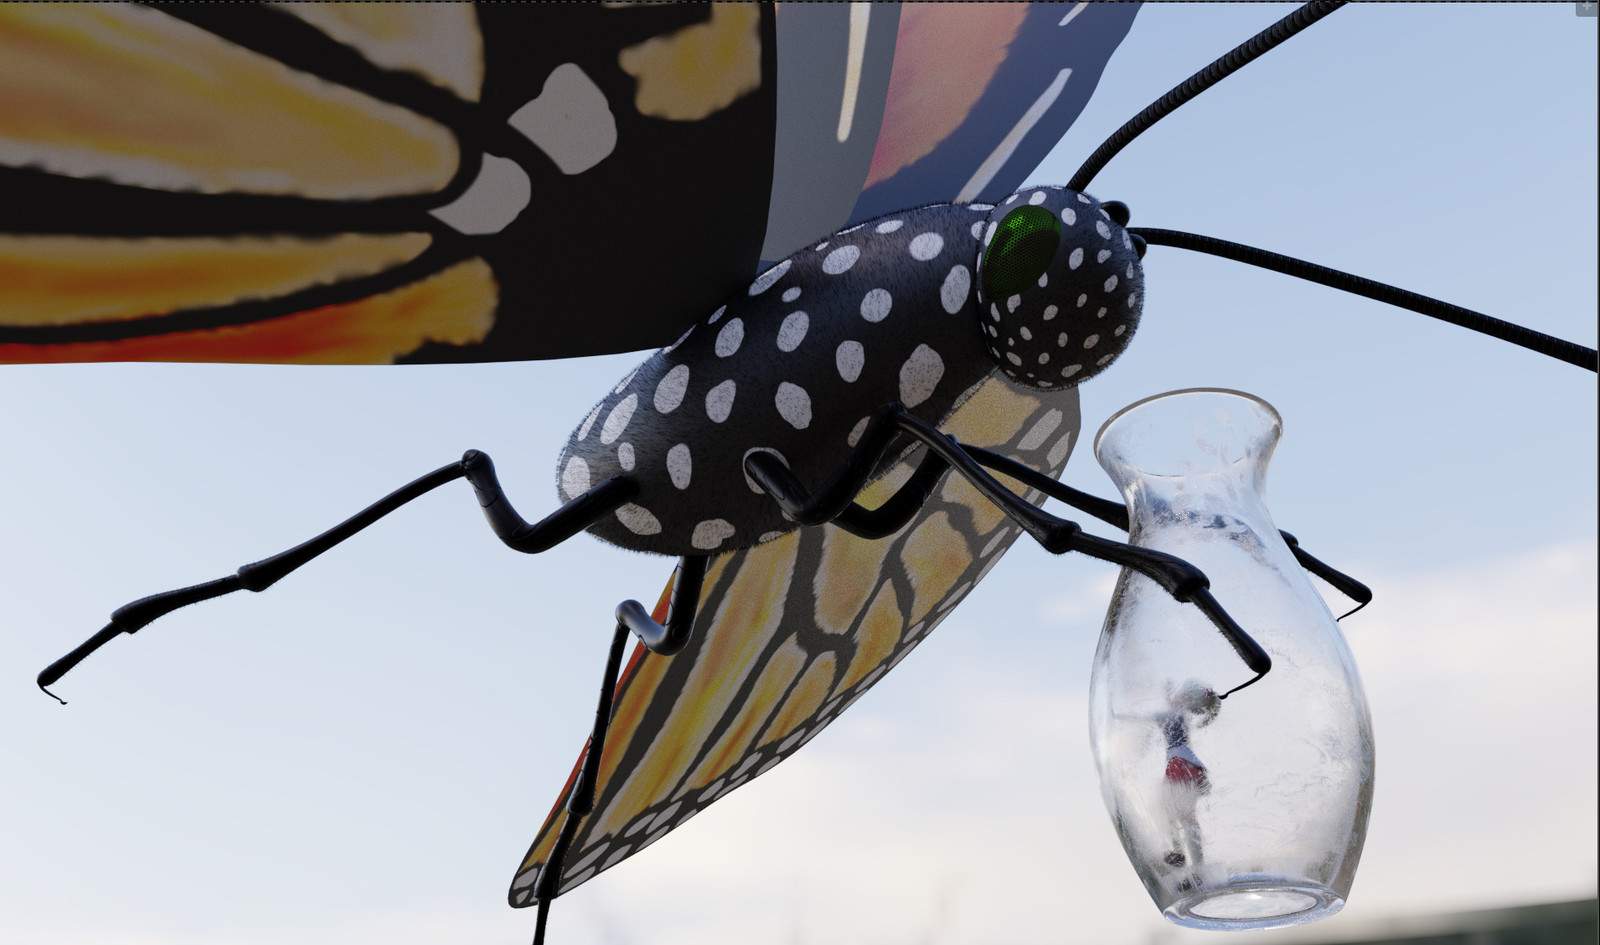 Reverse reality. The irony of a butterfly catching and putting a human in a jar is enthralling to me!